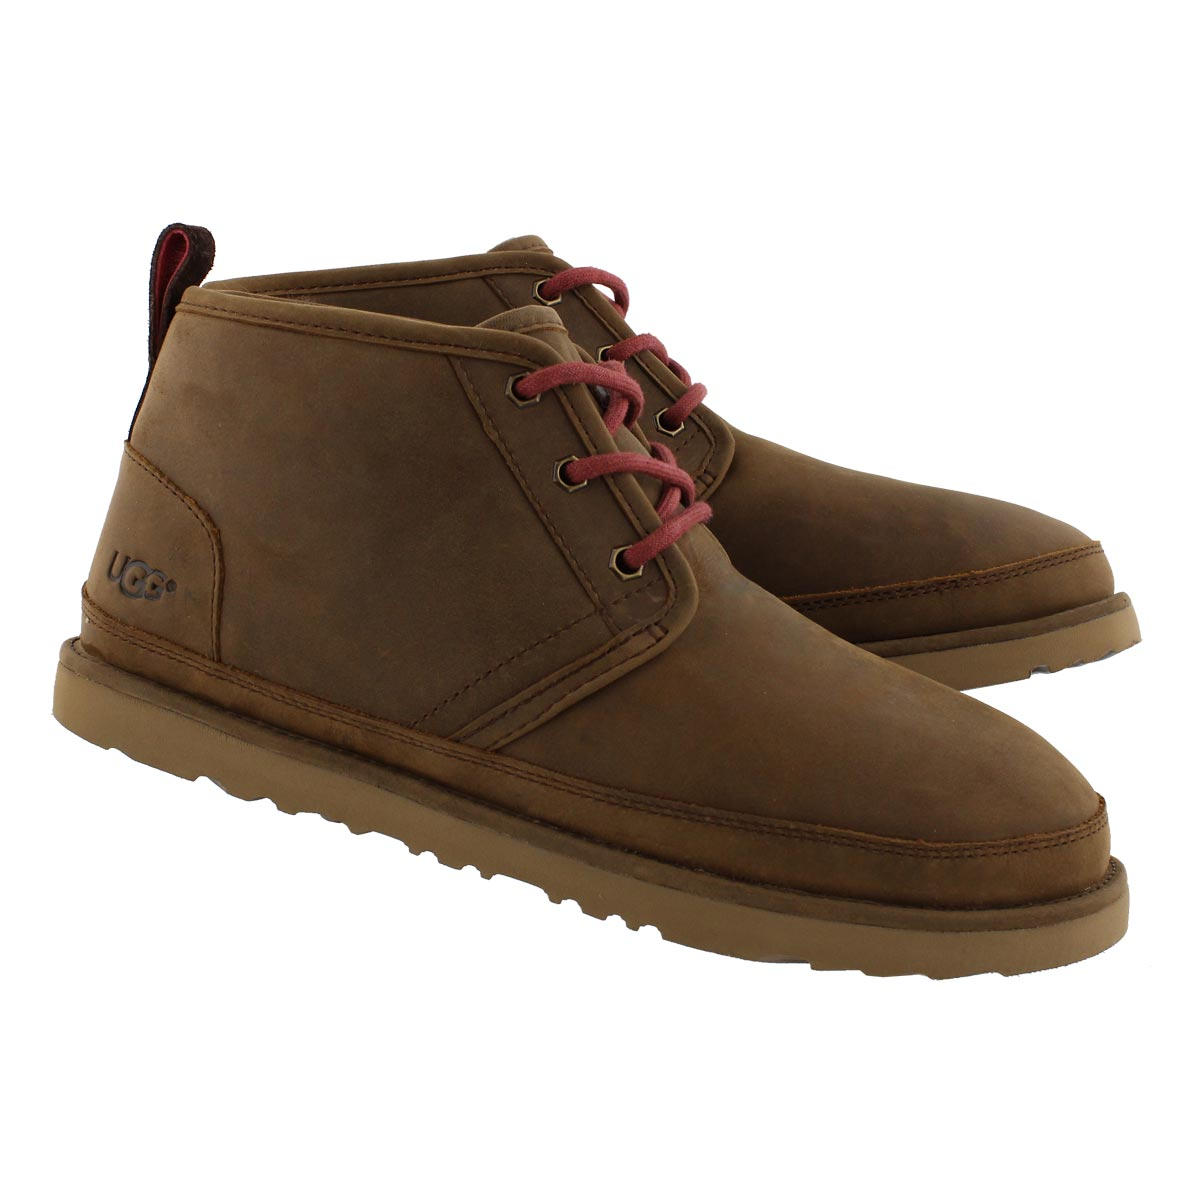 Mns Neumel grizzly wtpf chukka boot